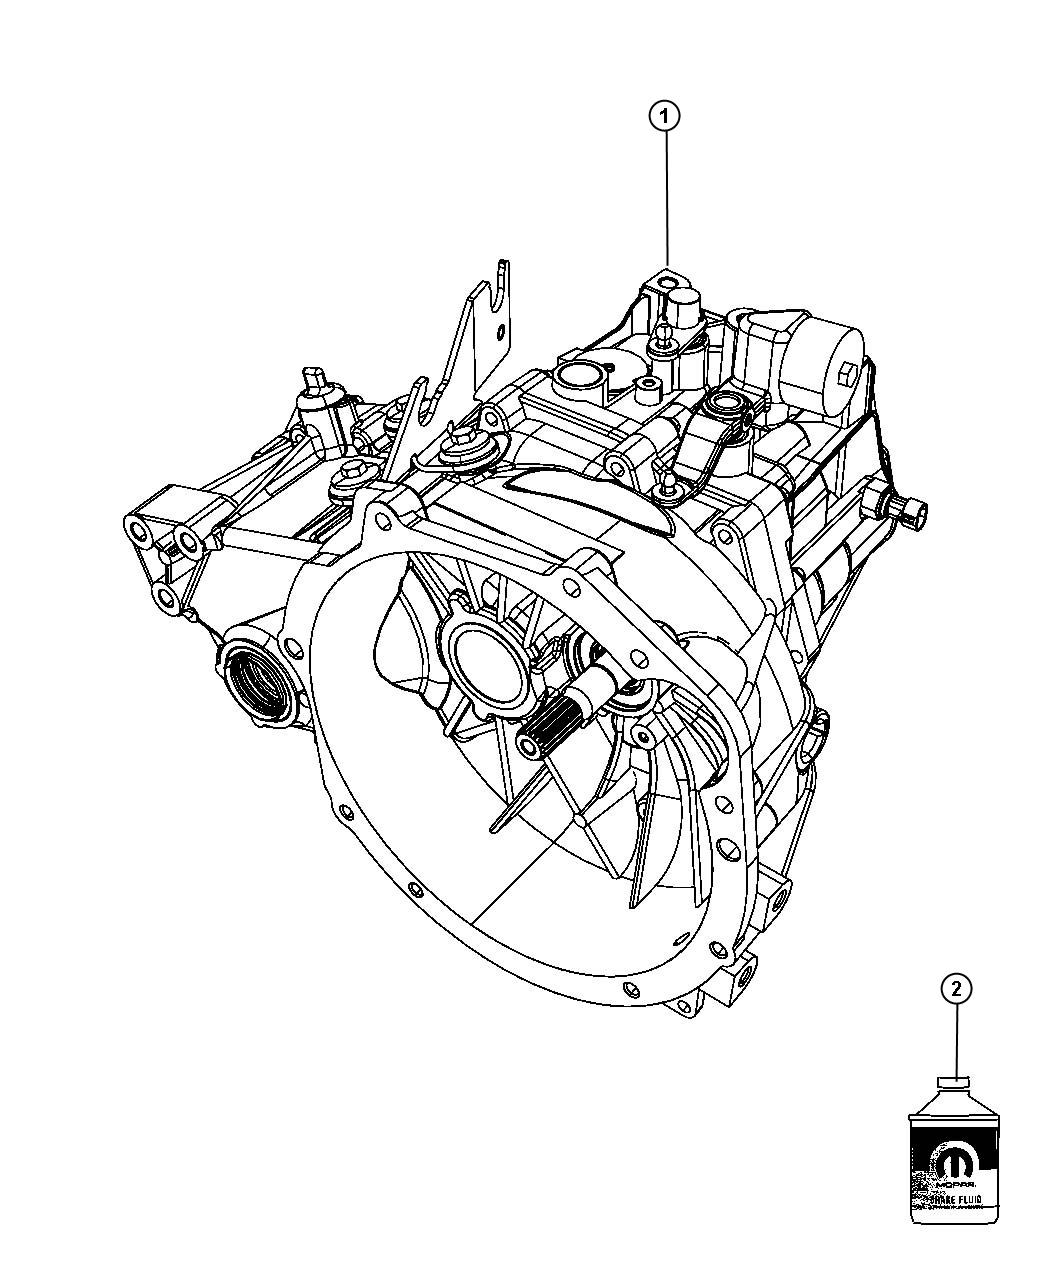 2010 Dodge Caliber Transmission / Transaxle Assembly